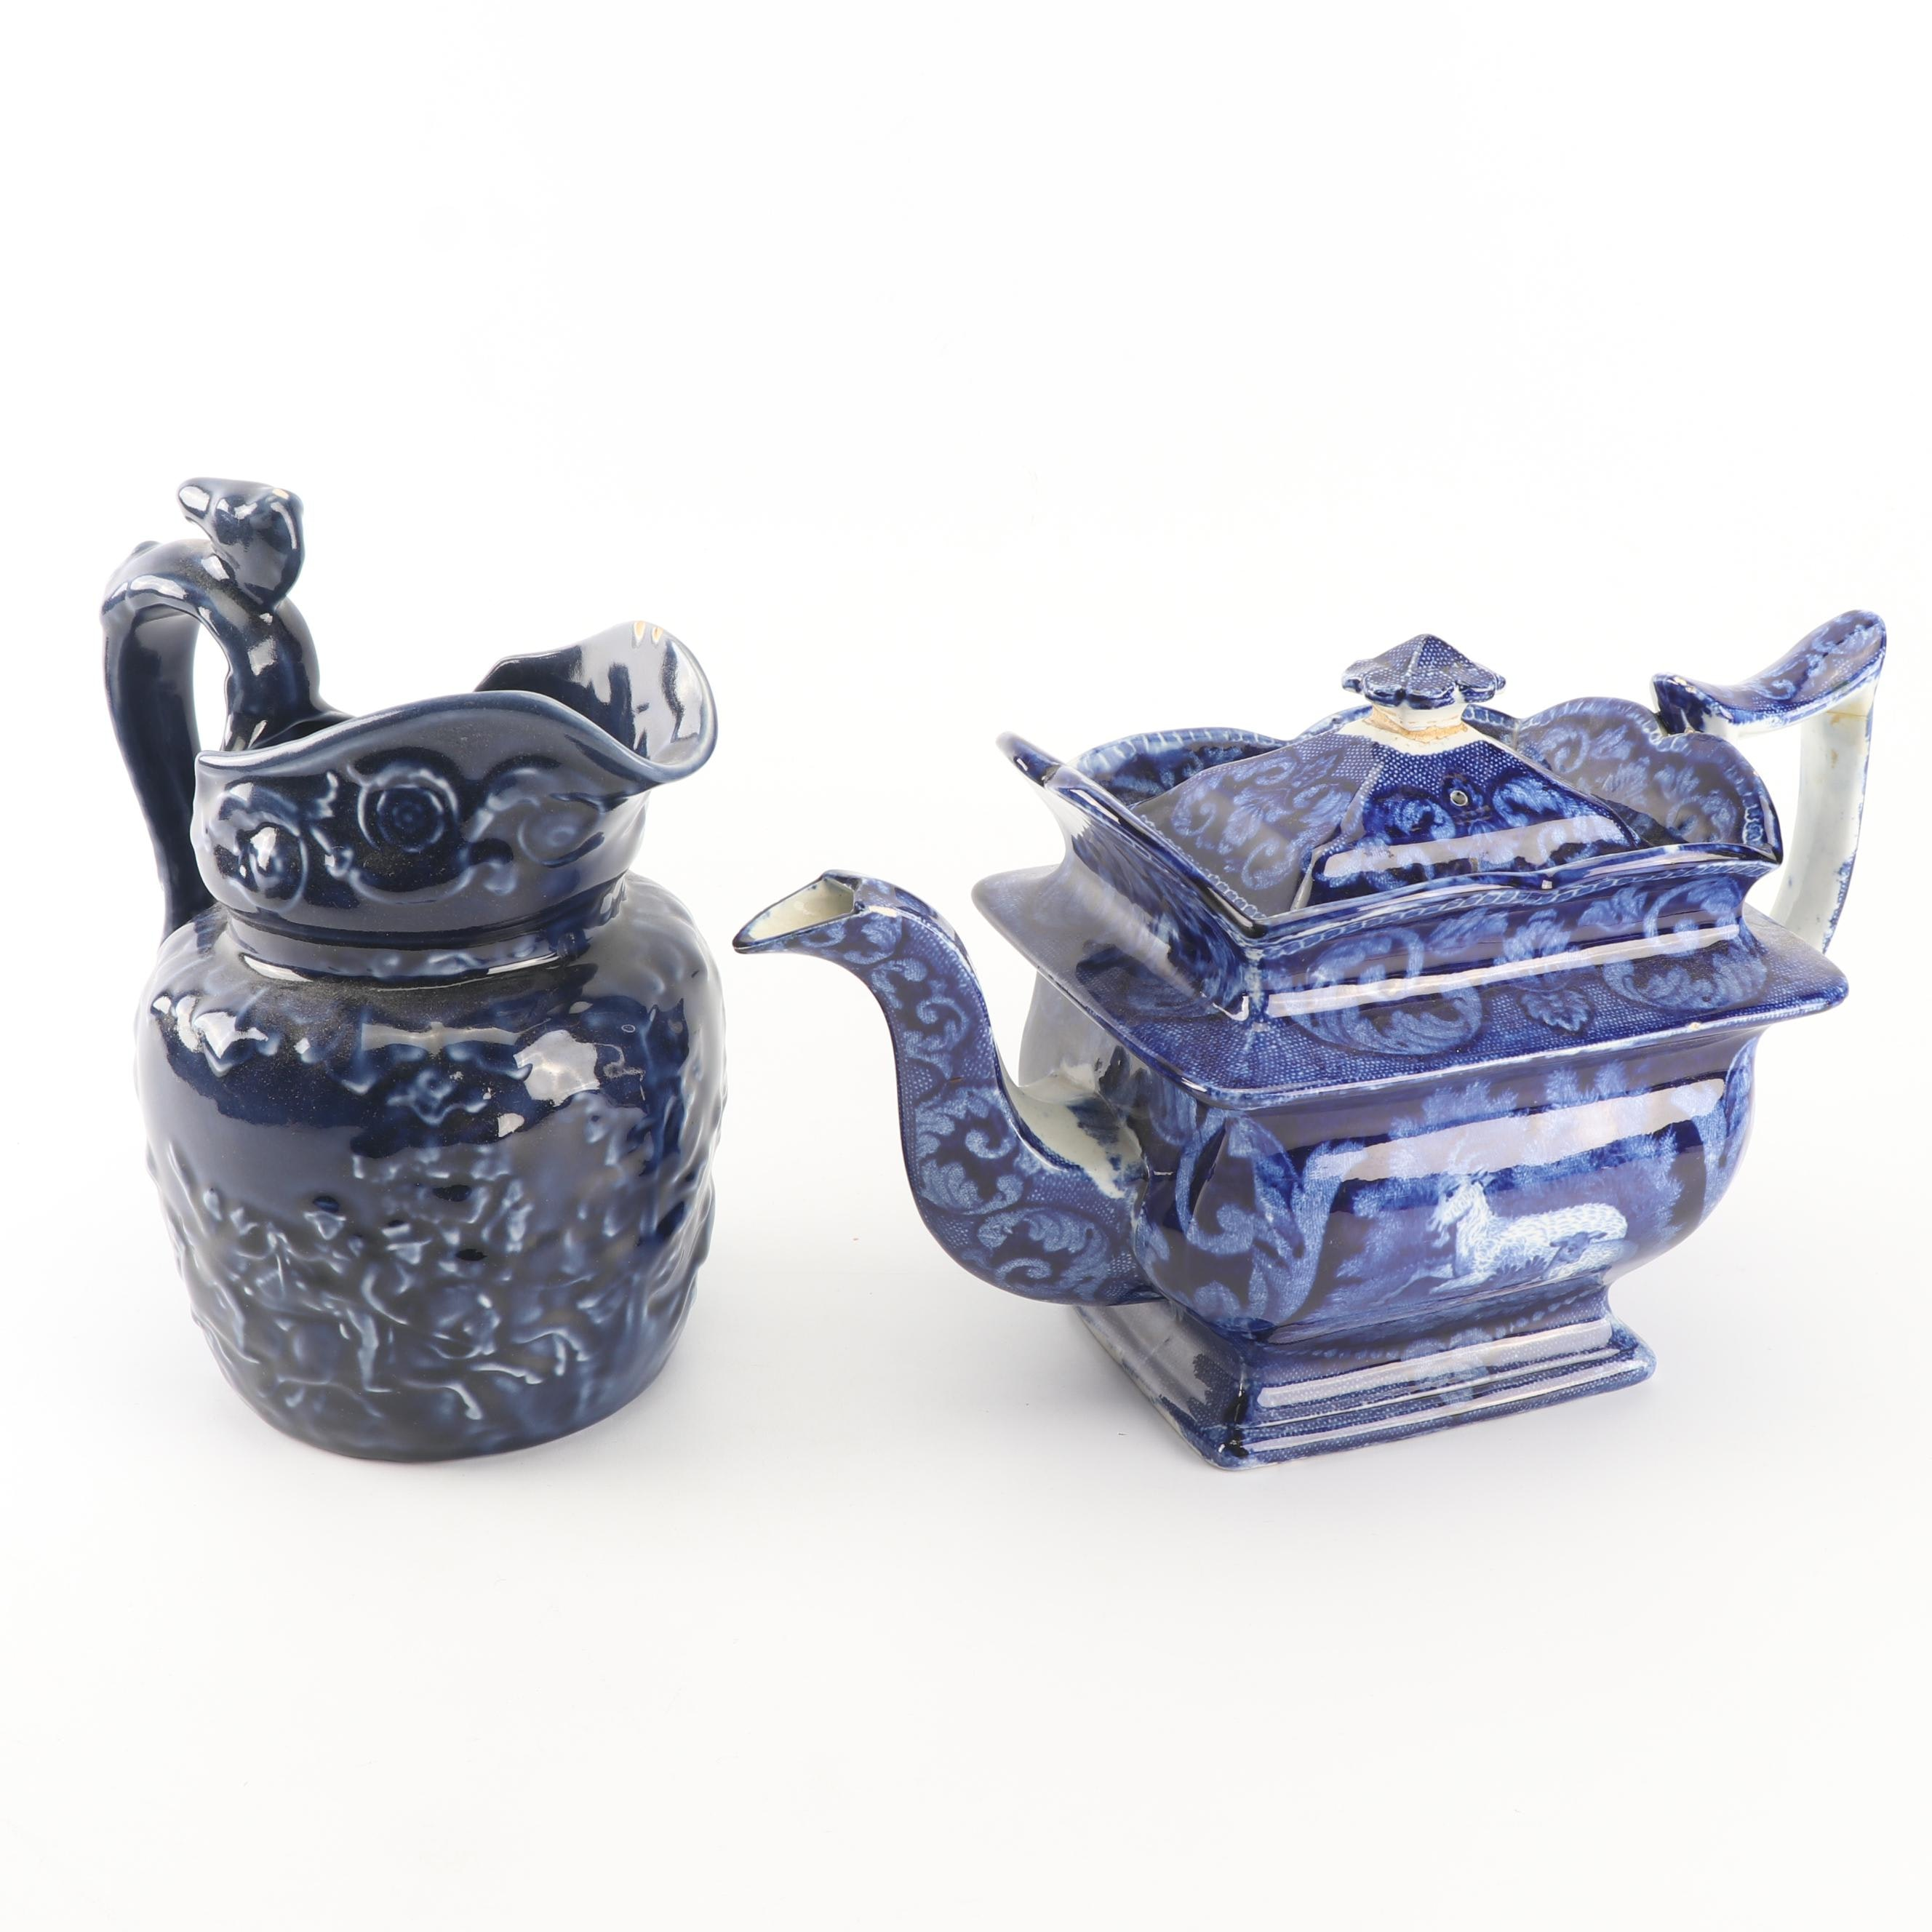 Arthur Wood Blue Glazed Pottery Pitcher with English Transfer-Printed Teapot